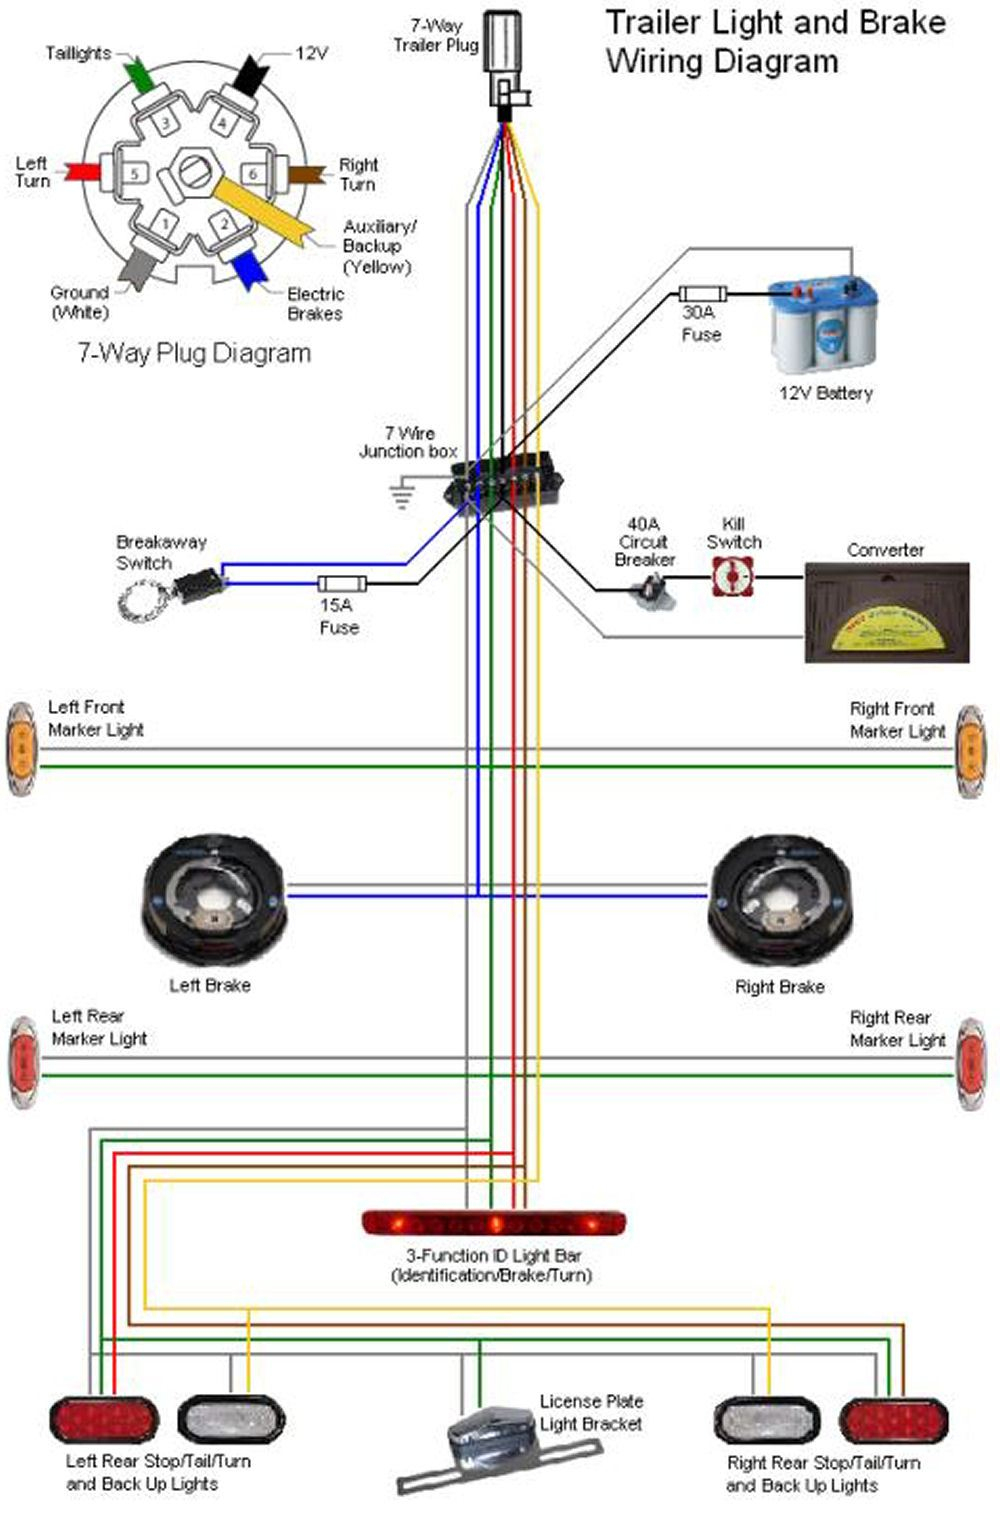 7 Wire Plug Diagram Pin Trailer Wiring | Wiring Diagram  Blade Wiring Diagram on 7 blade wire harness, 7 pronge trailer connector diagram, 7 blade trailer wiring pigtail,